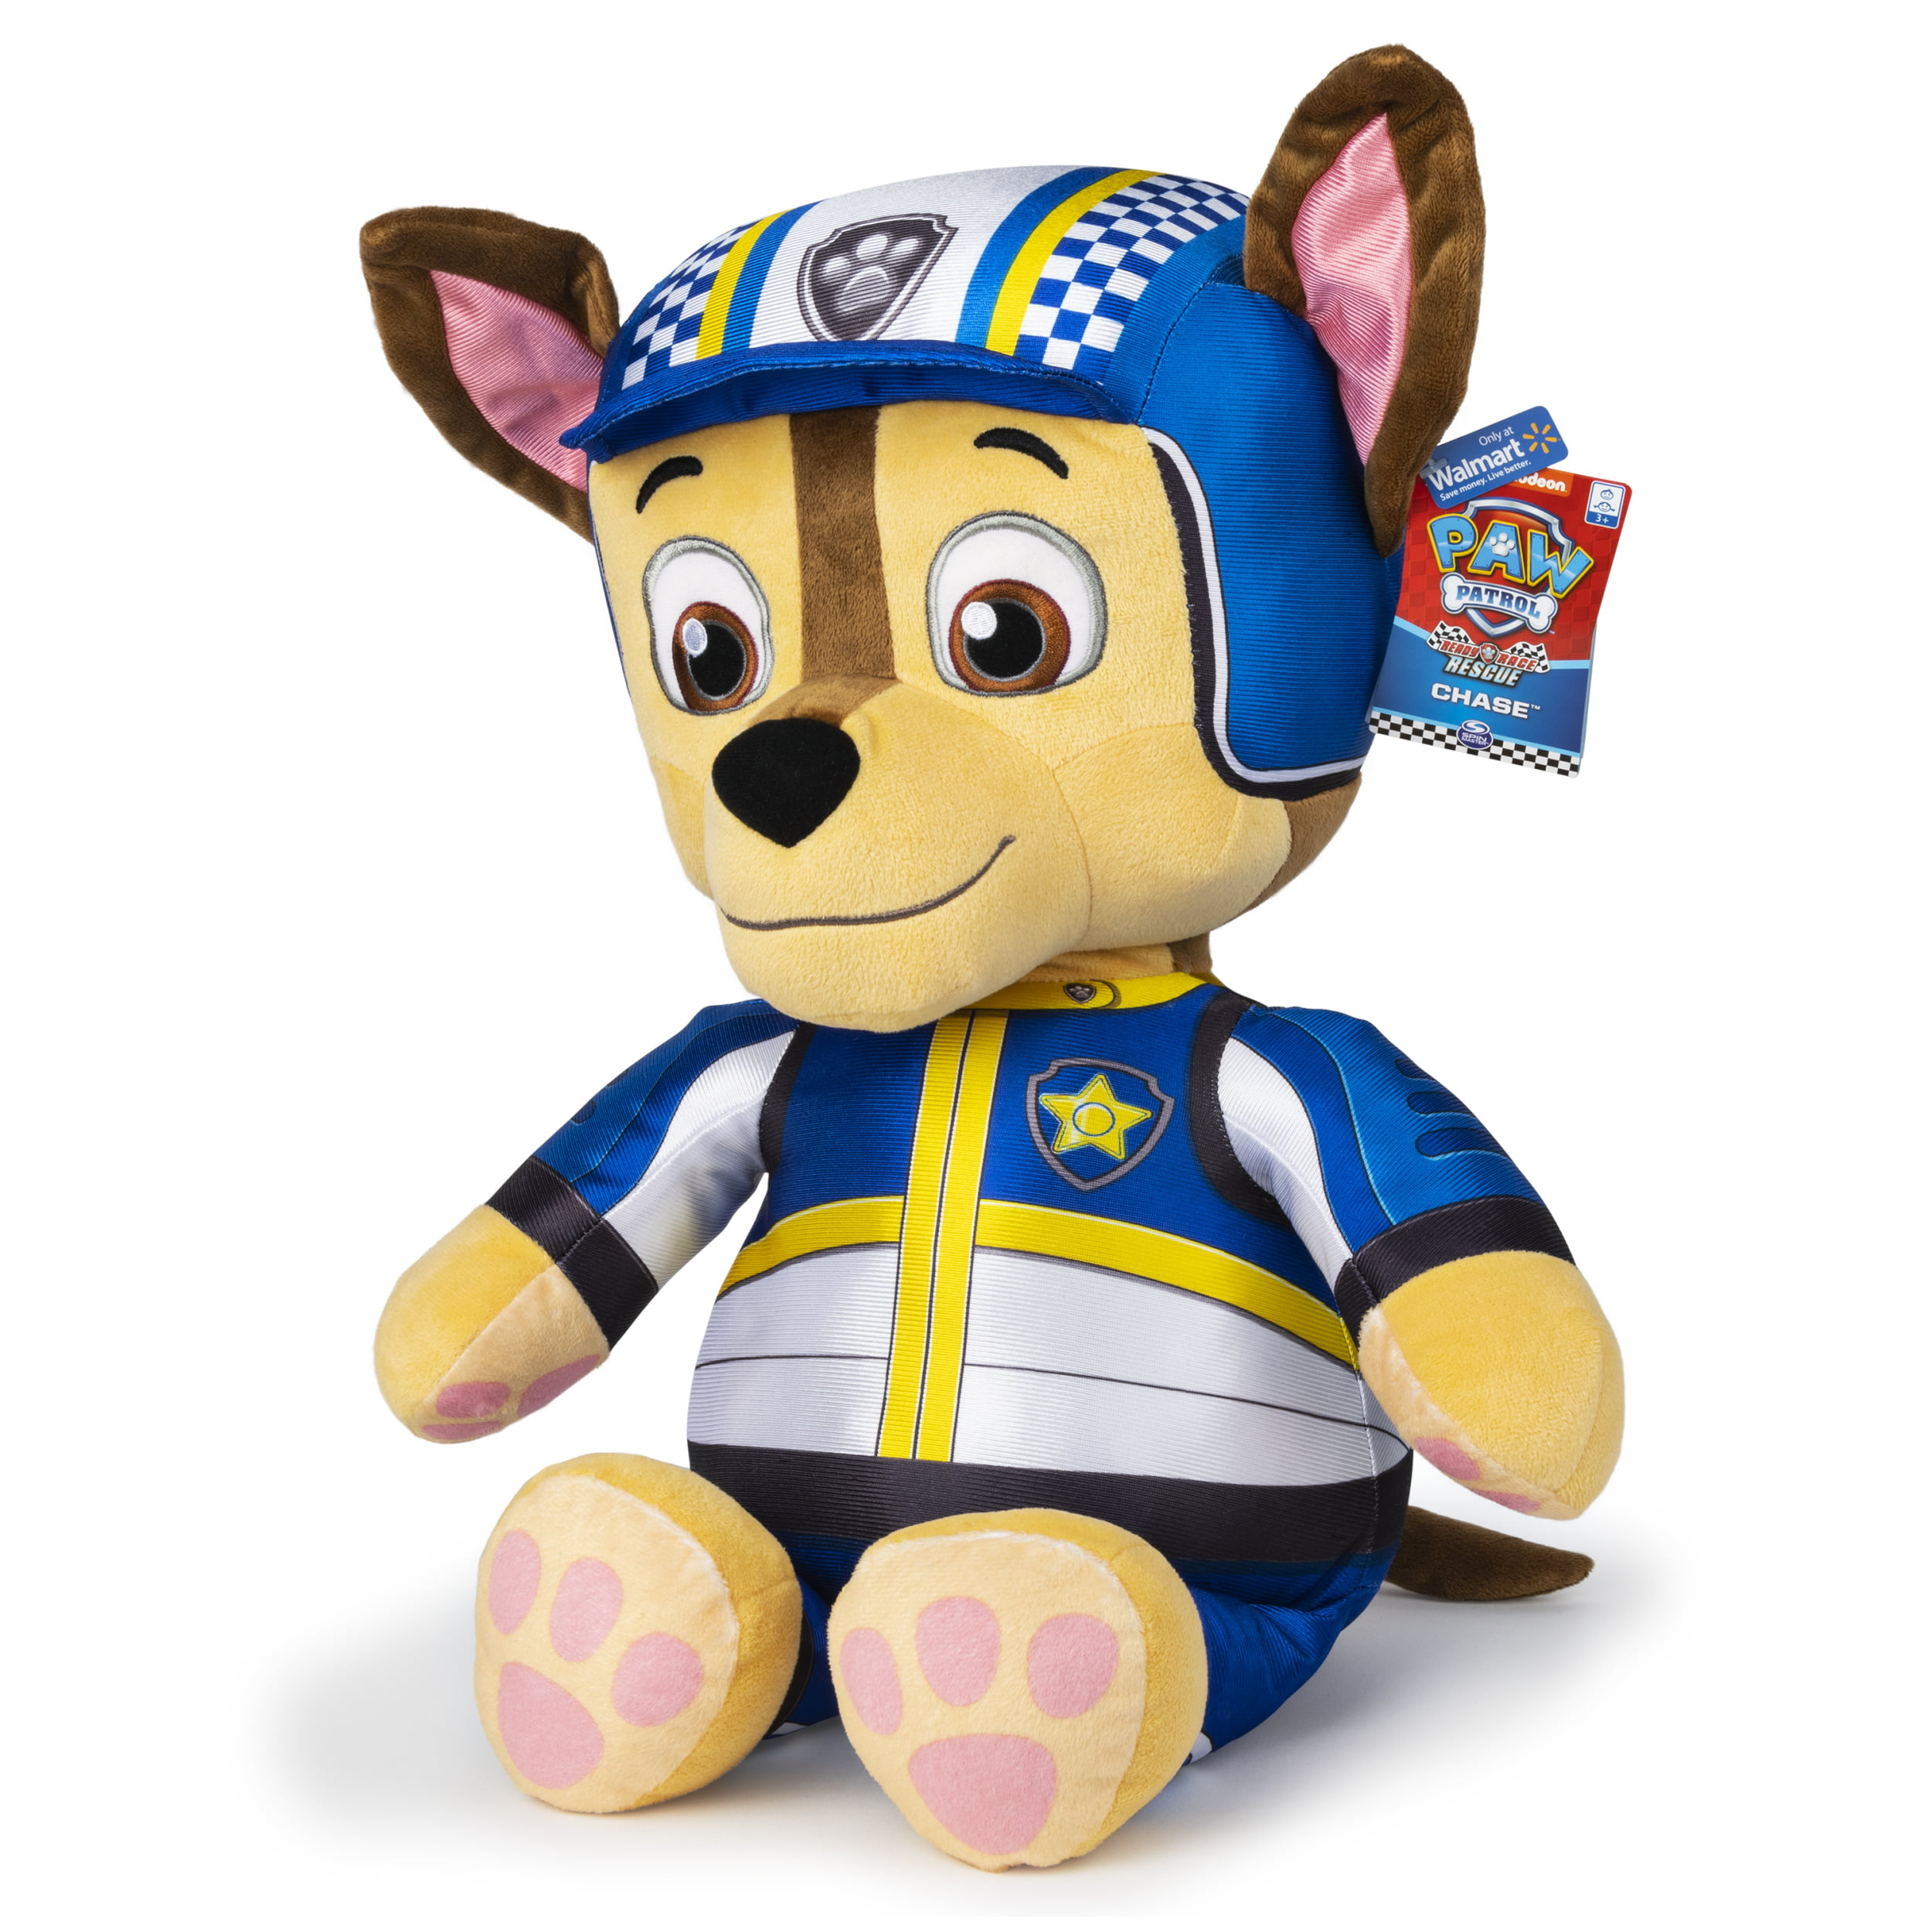 PAW Patrol, 24-Inch Ready, Race, Rescue Chase Jumbo Plush, Walmart Exclusive, for Ages 3 and Up